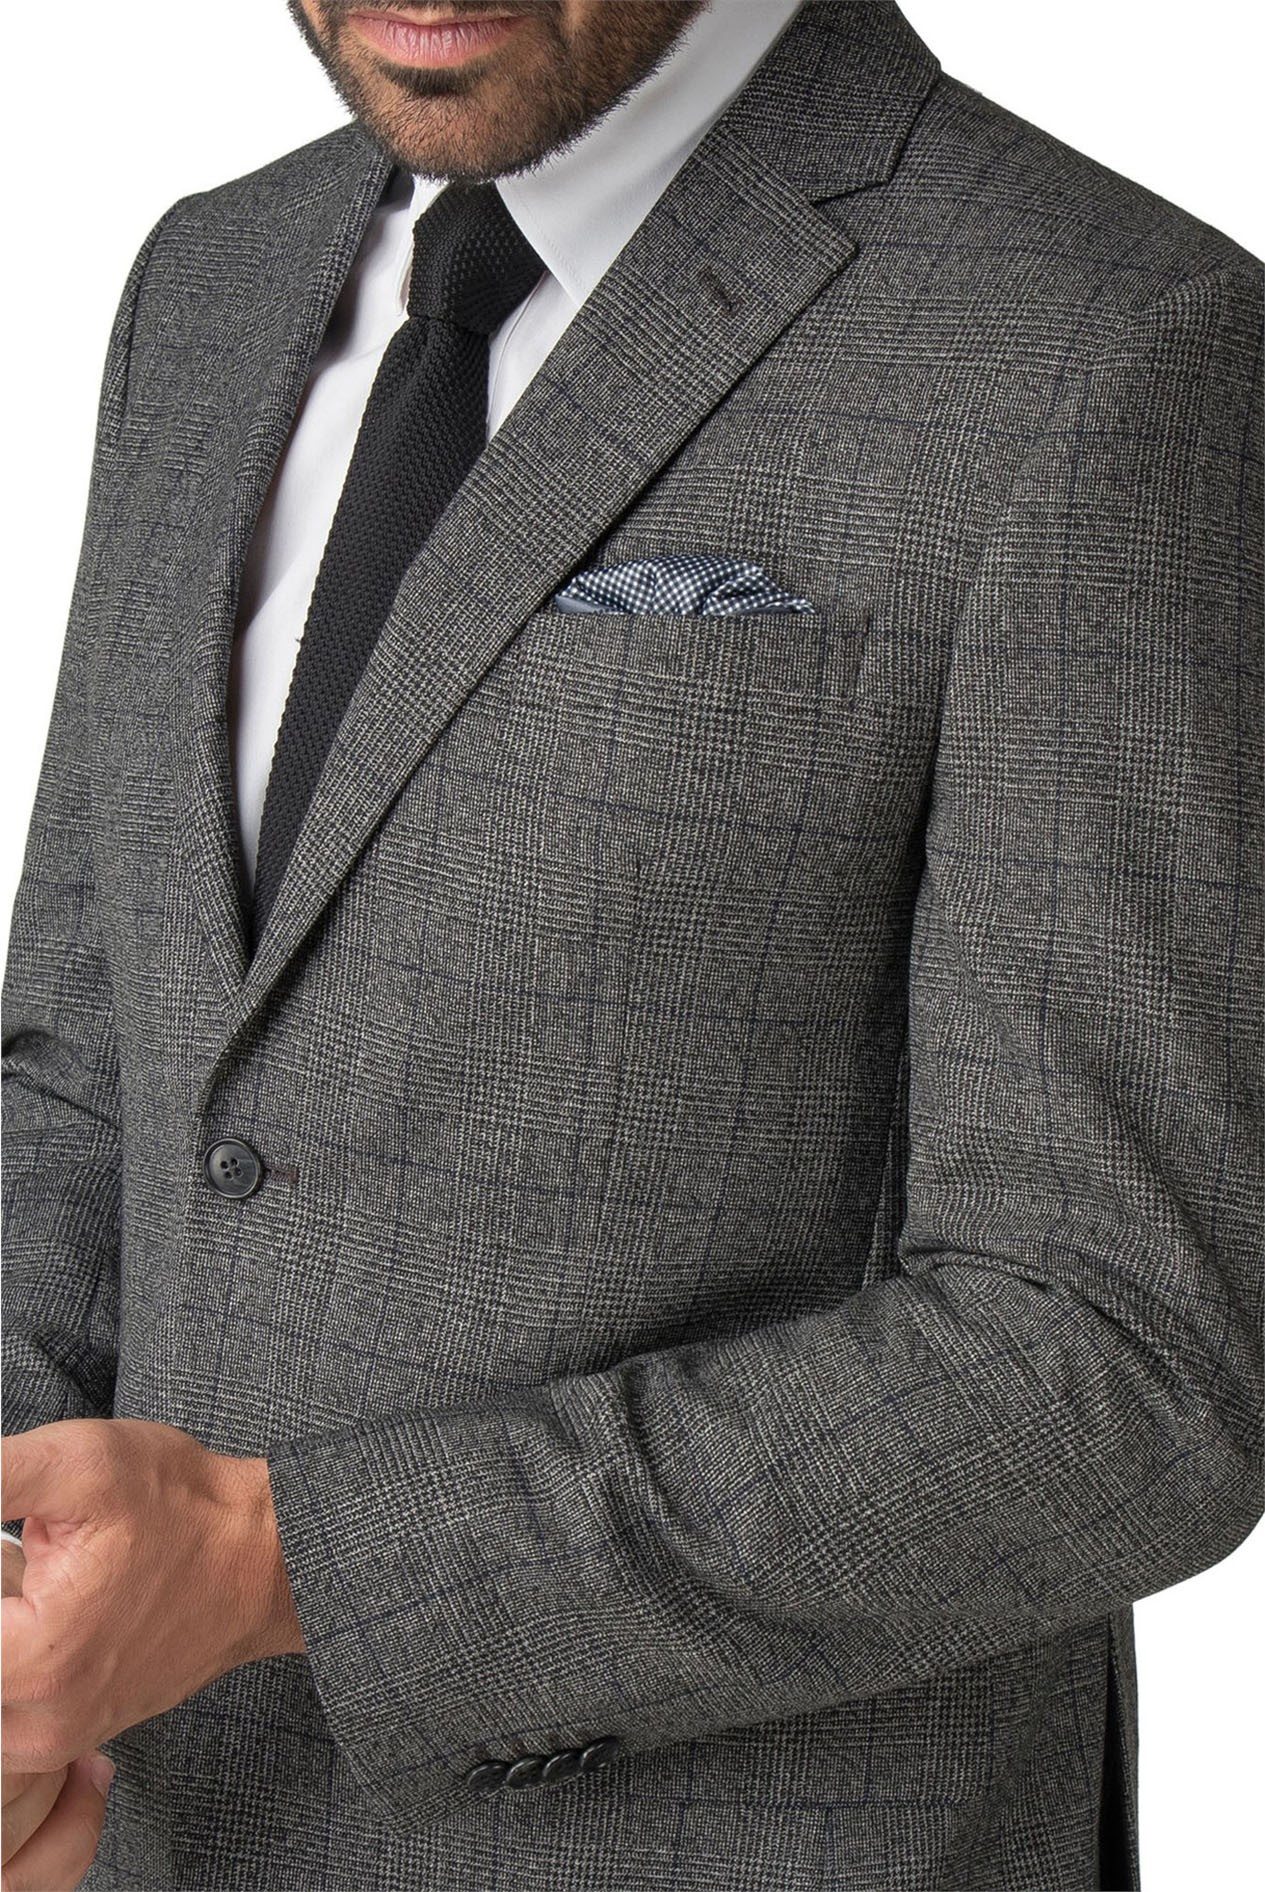 Men/'s Suit Jeff Banks Tailored Fit Charcoal Grey Wool Blend